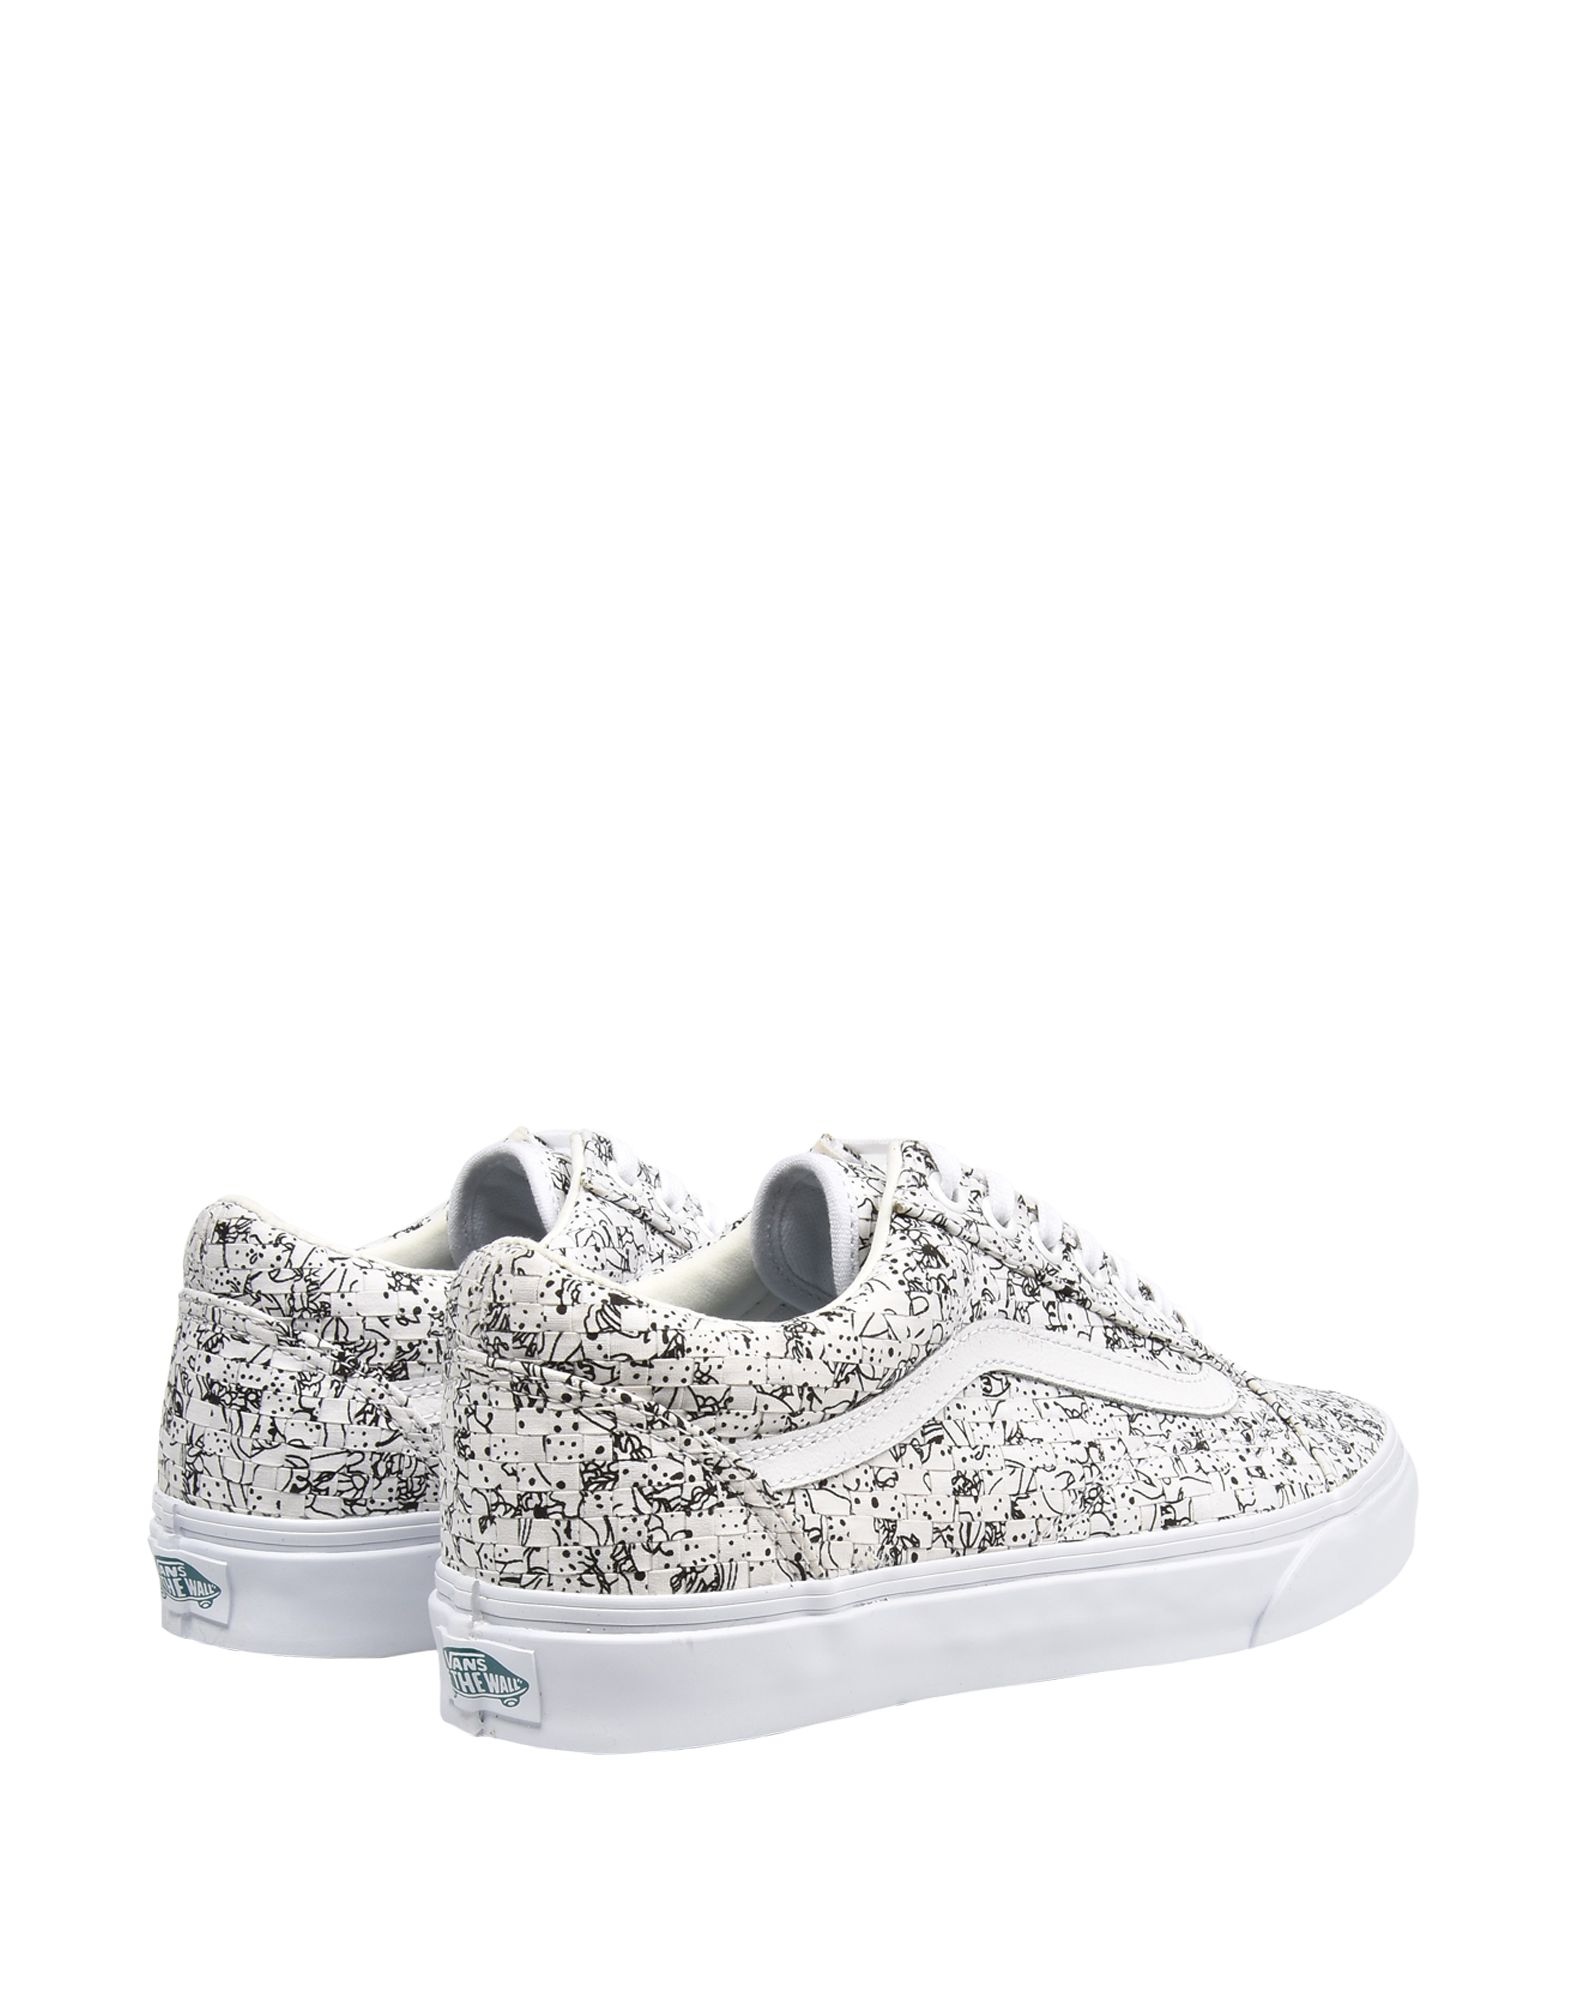 Sneakers Vans Ua Old Skool Dx - Woven Textile - Donna - 11217686IU